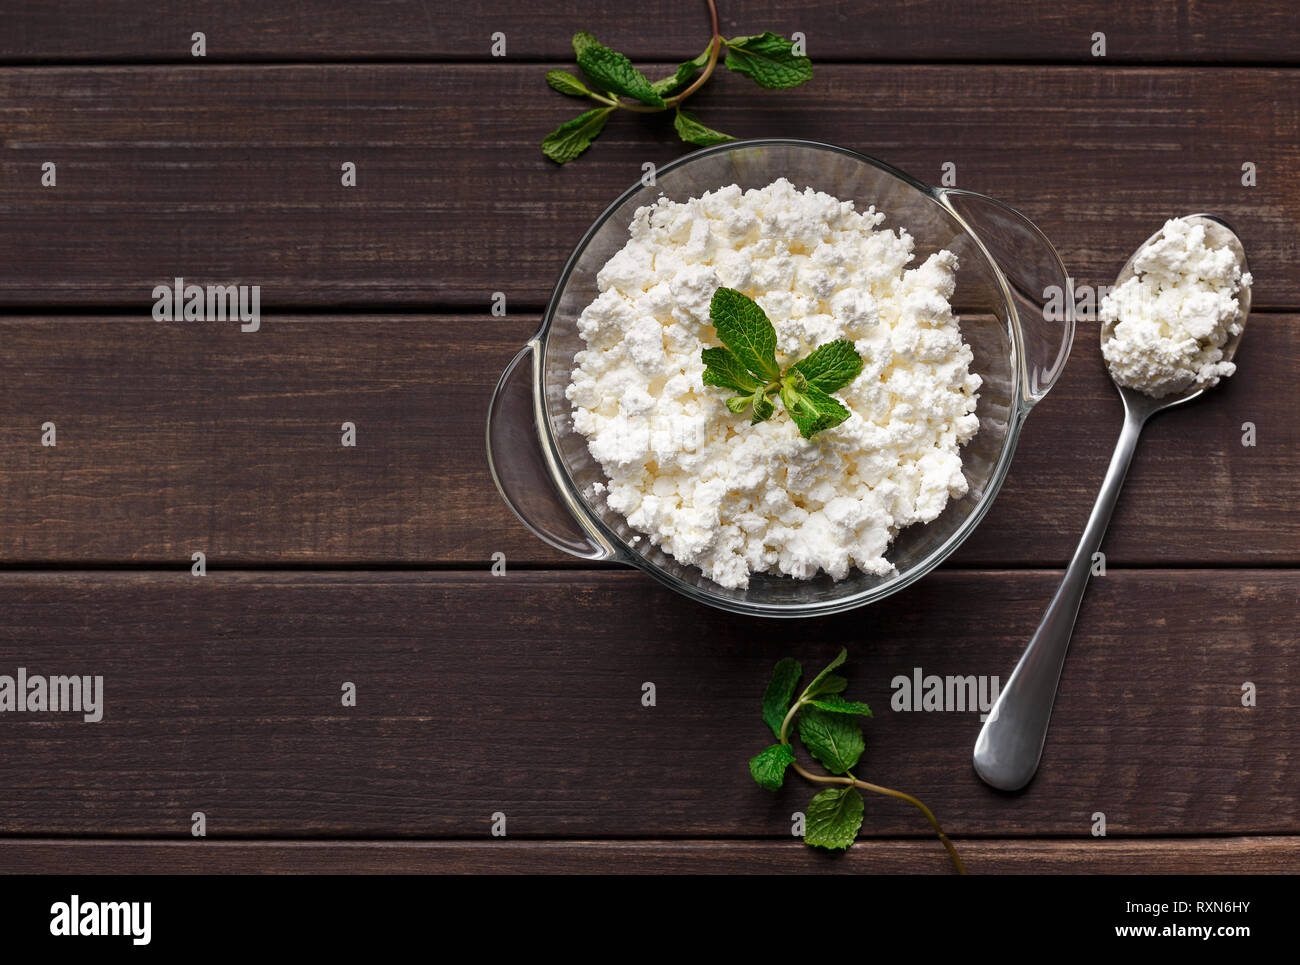 Homemade cottage cheese concept - Stock Image